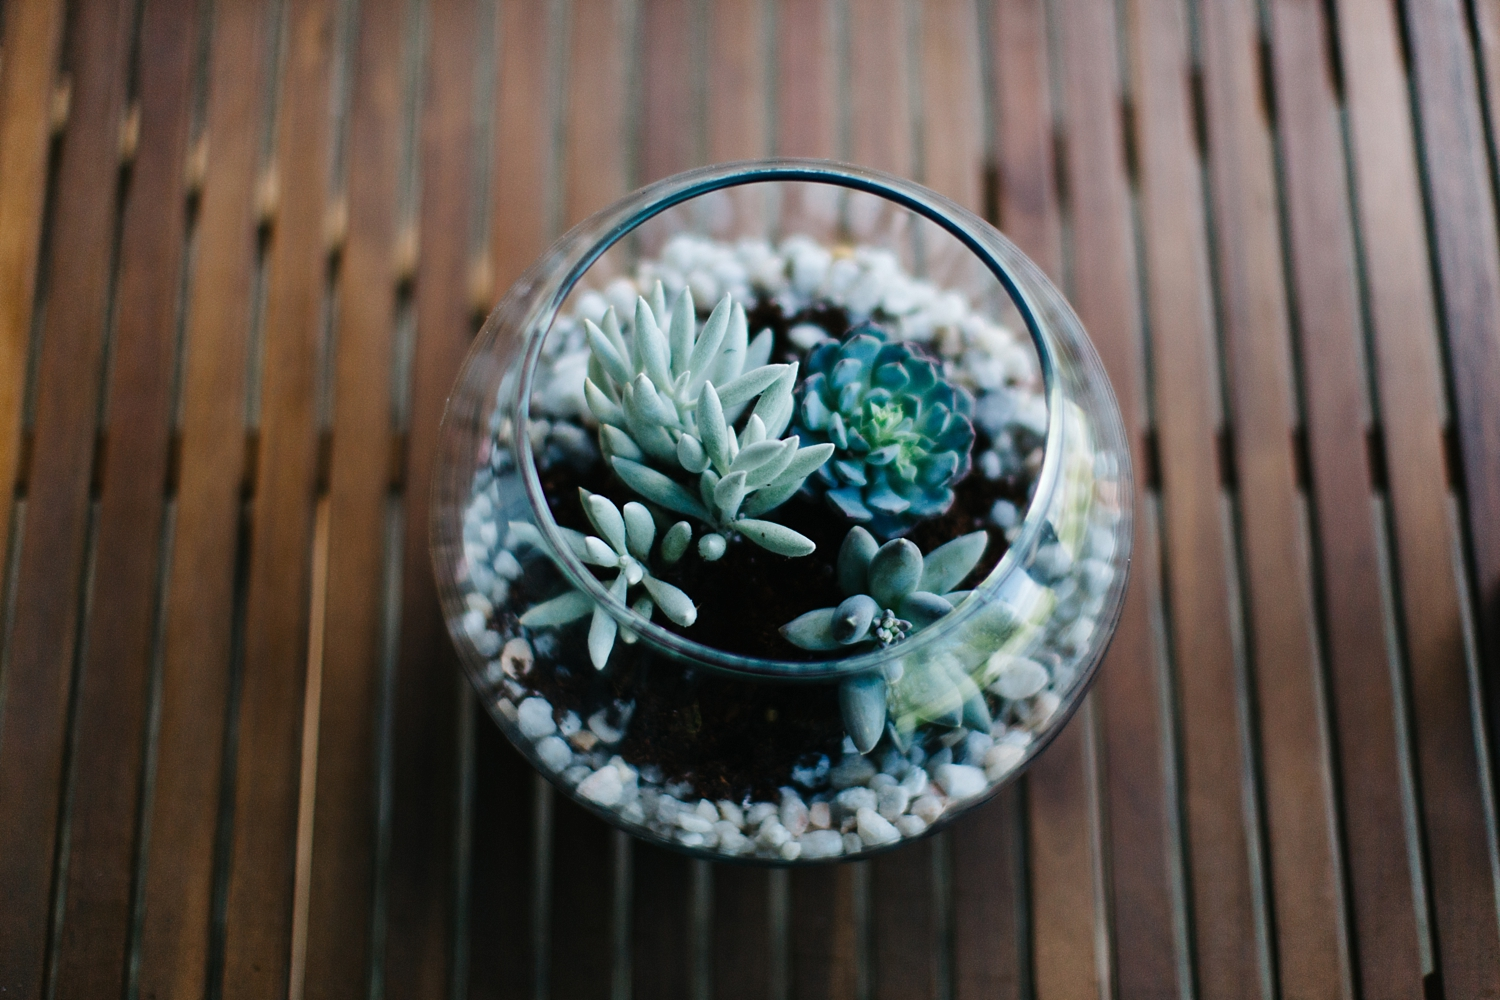 Put as many succulents as you would like in the terrarium. Sprinkle soil around them to cover their roots.